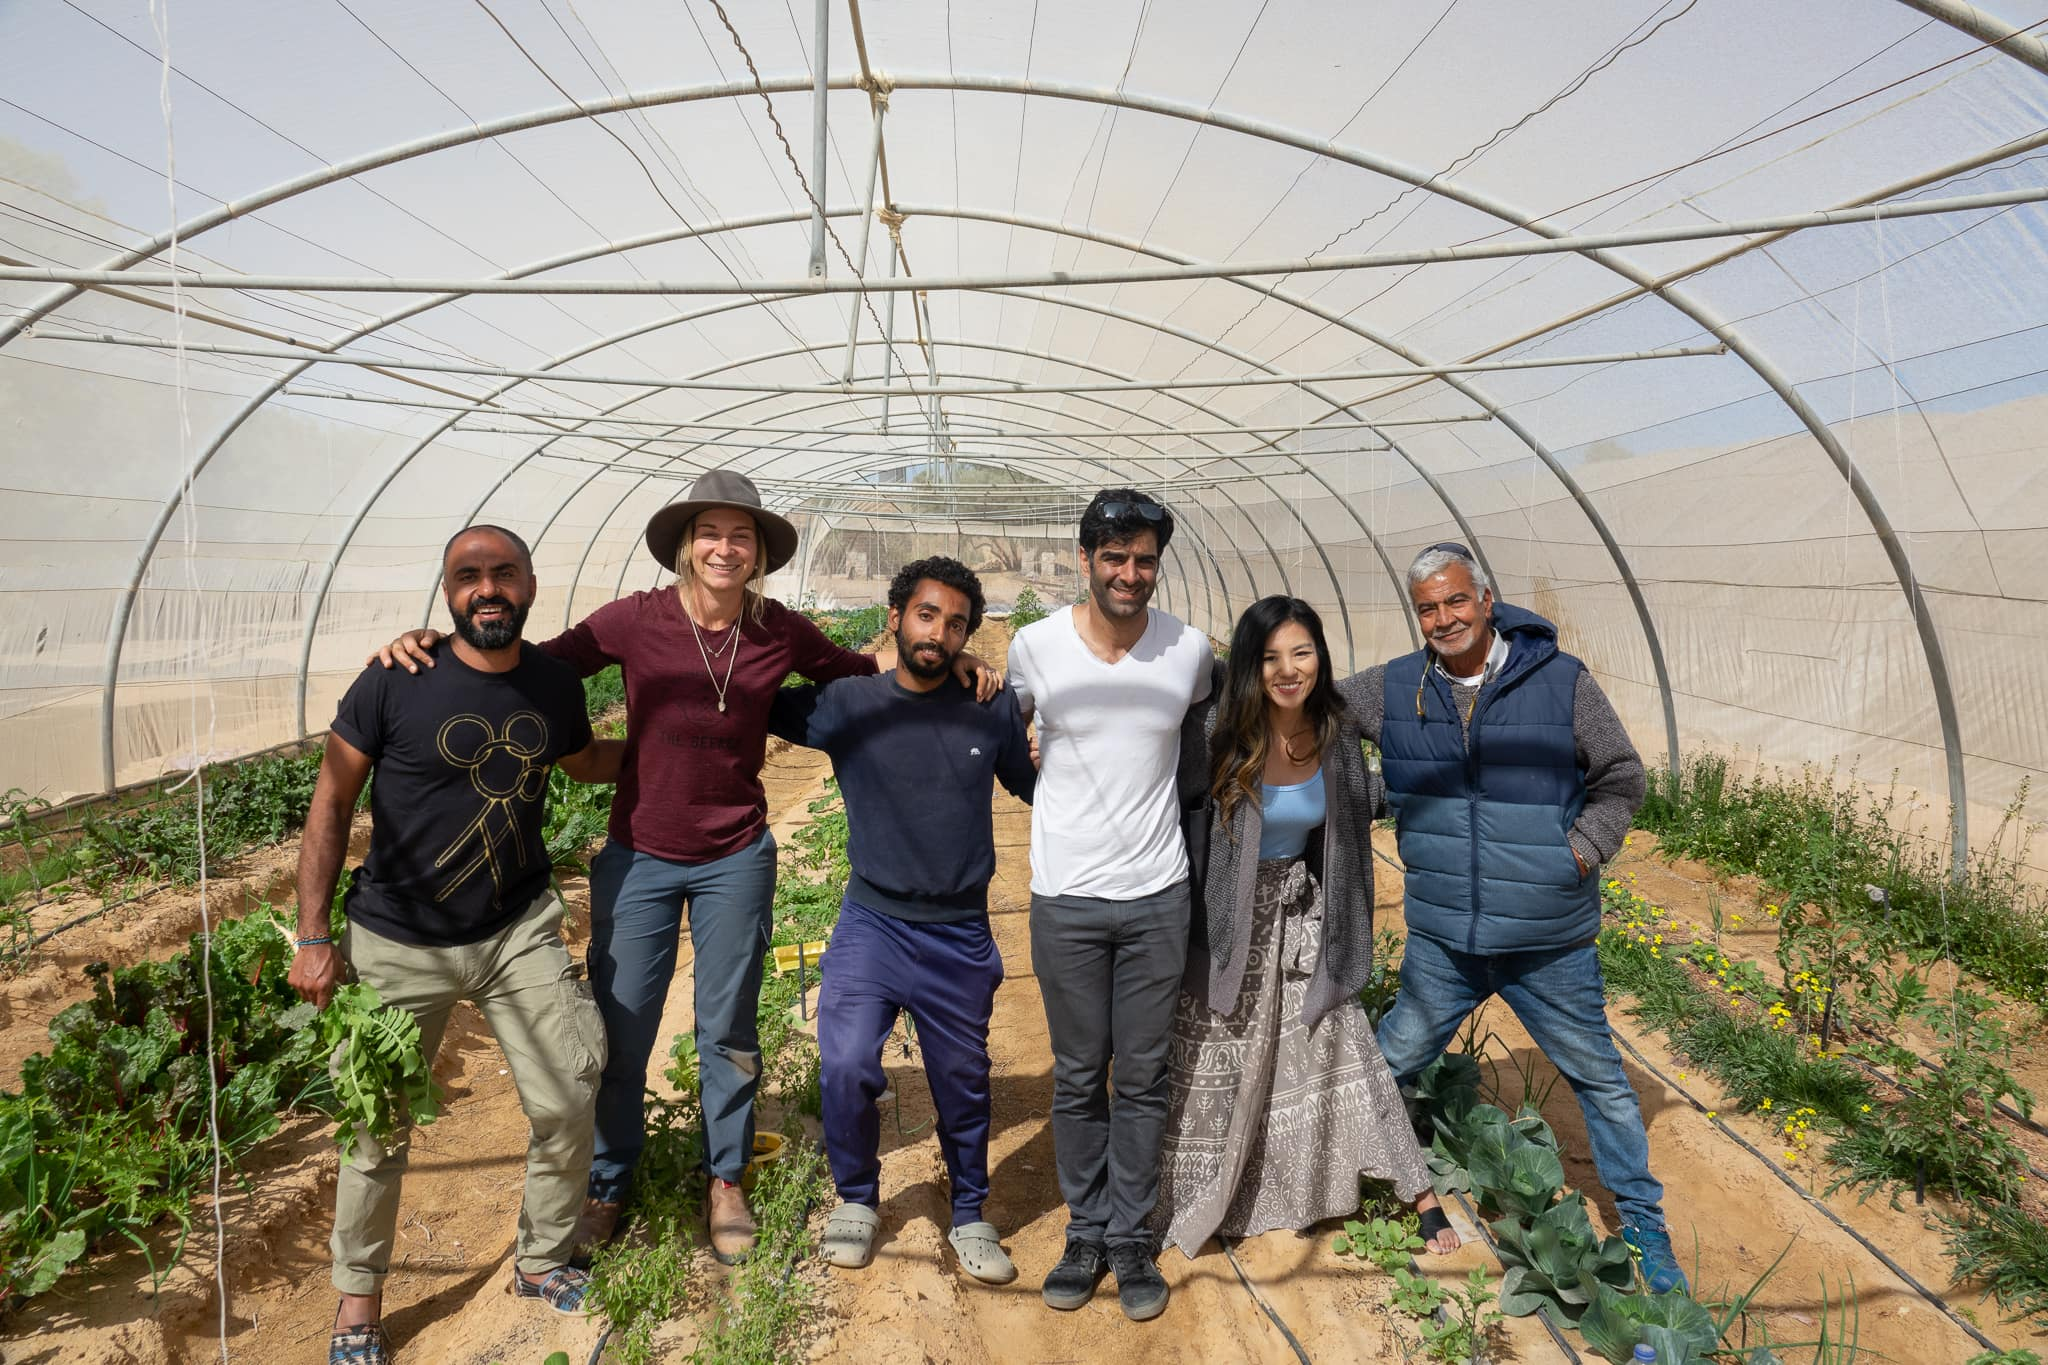 Group in greenhouse